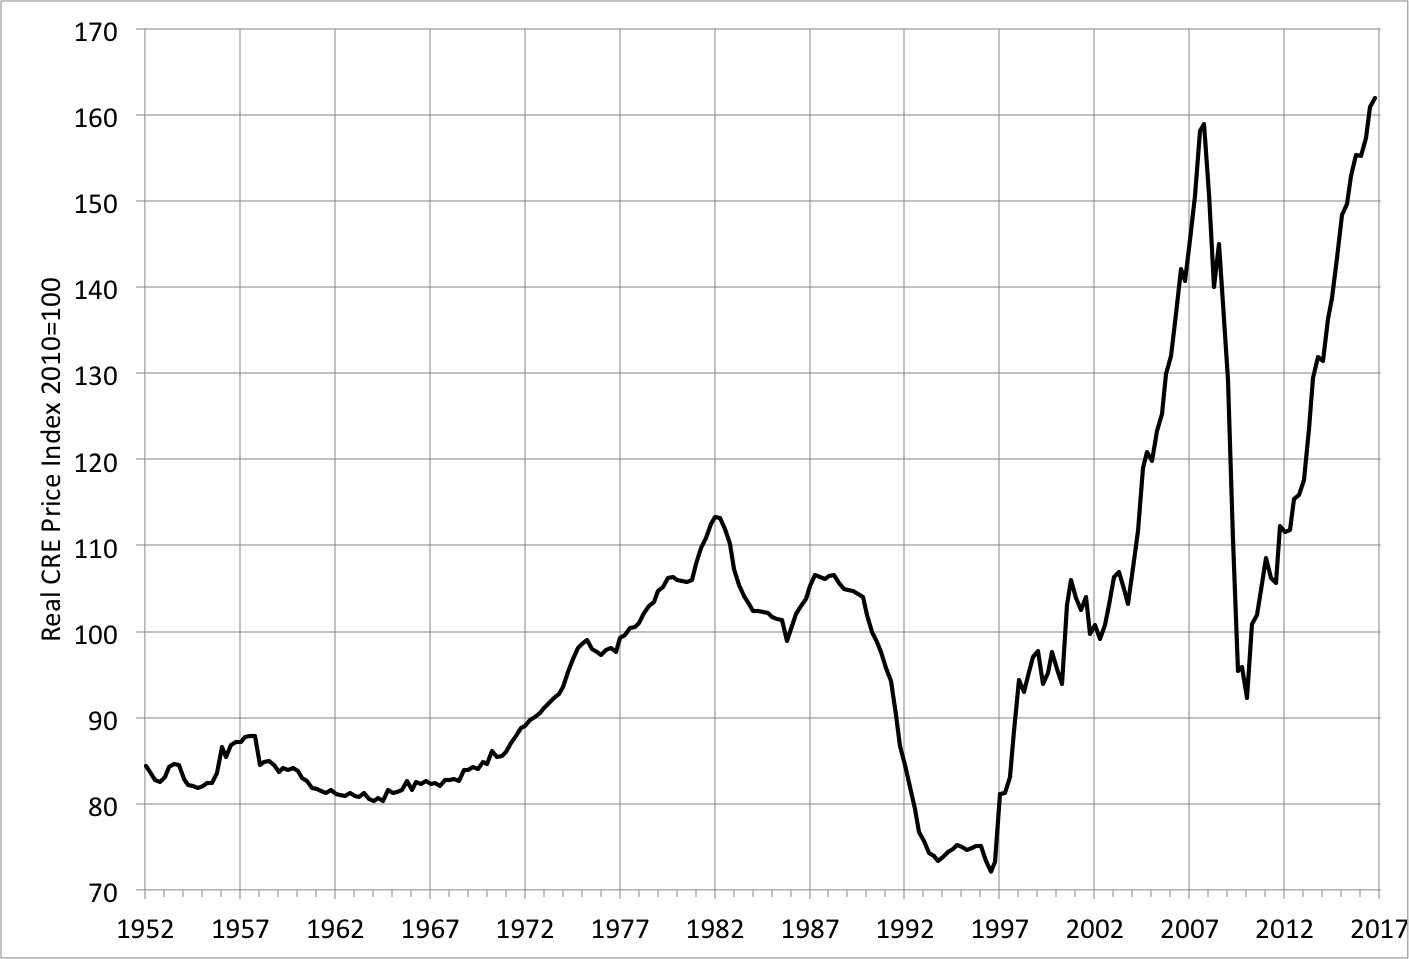 Note: The index shown is the nominal CRE price index deflated by the GDP deflator. Sources:    BIS    and FRED.